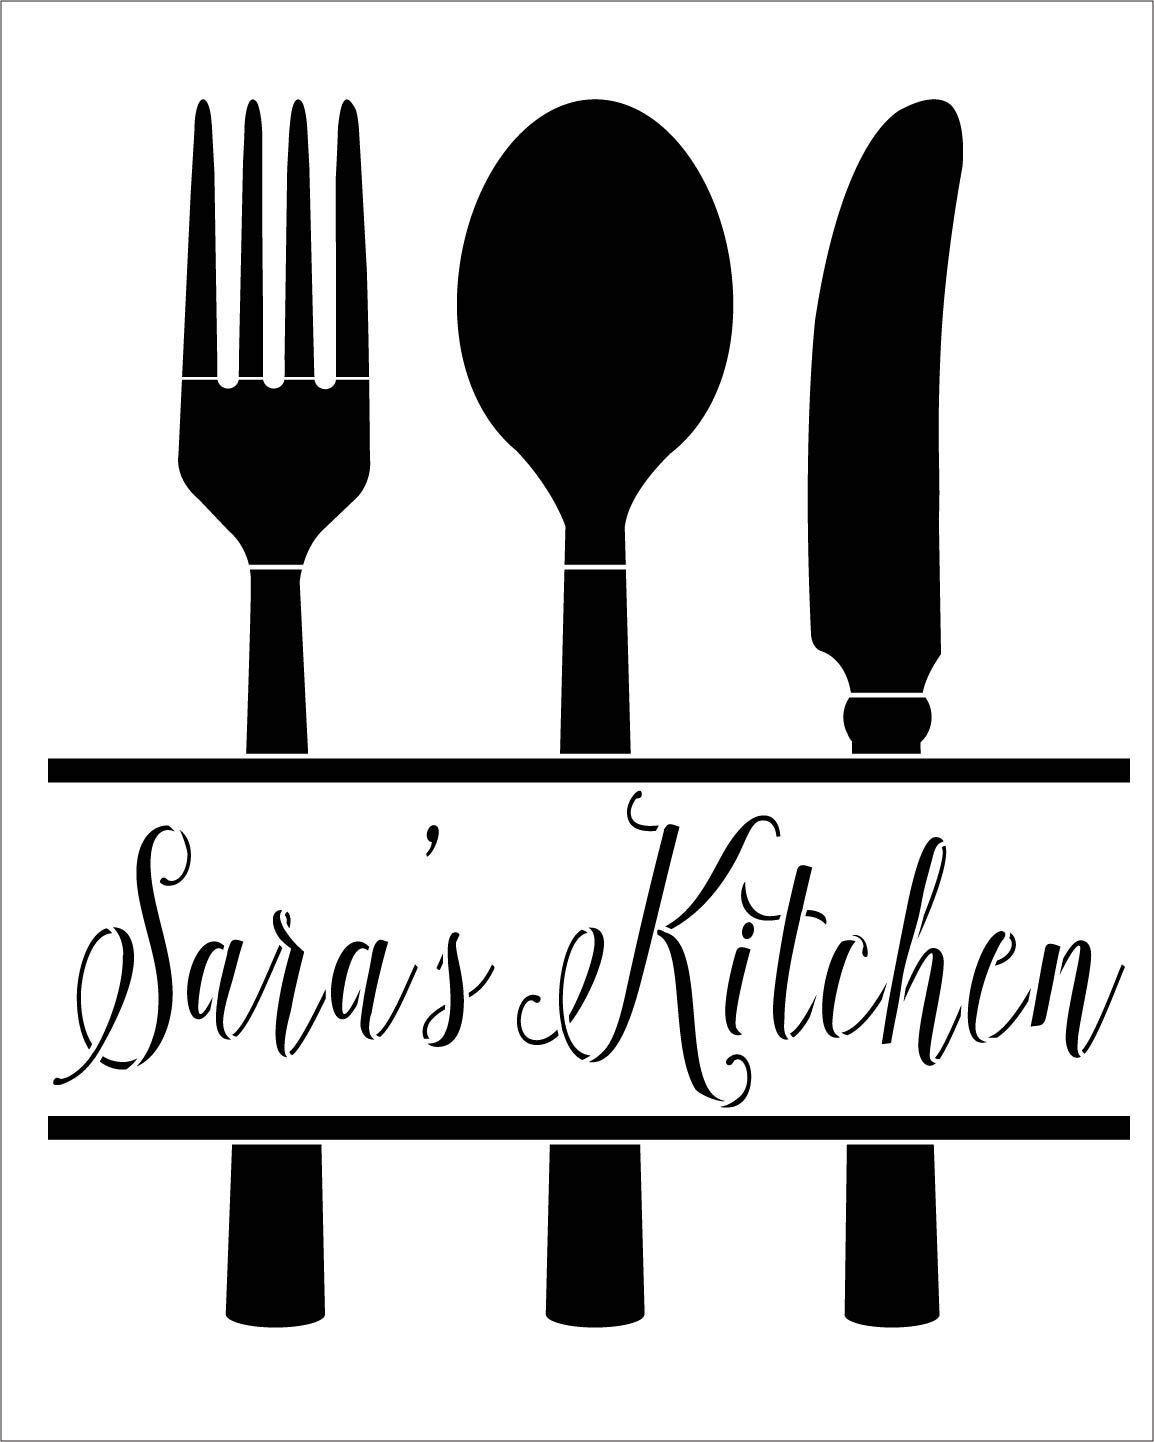 Personalized Kitchen Stencil with Fork, Knife, Spoon | Custom Name | DIY Country Cursive Script Home Decor | Farmhouse Utensil Art | Craft & Paint Wood Signs | Reusable Mylar Template | Select Size